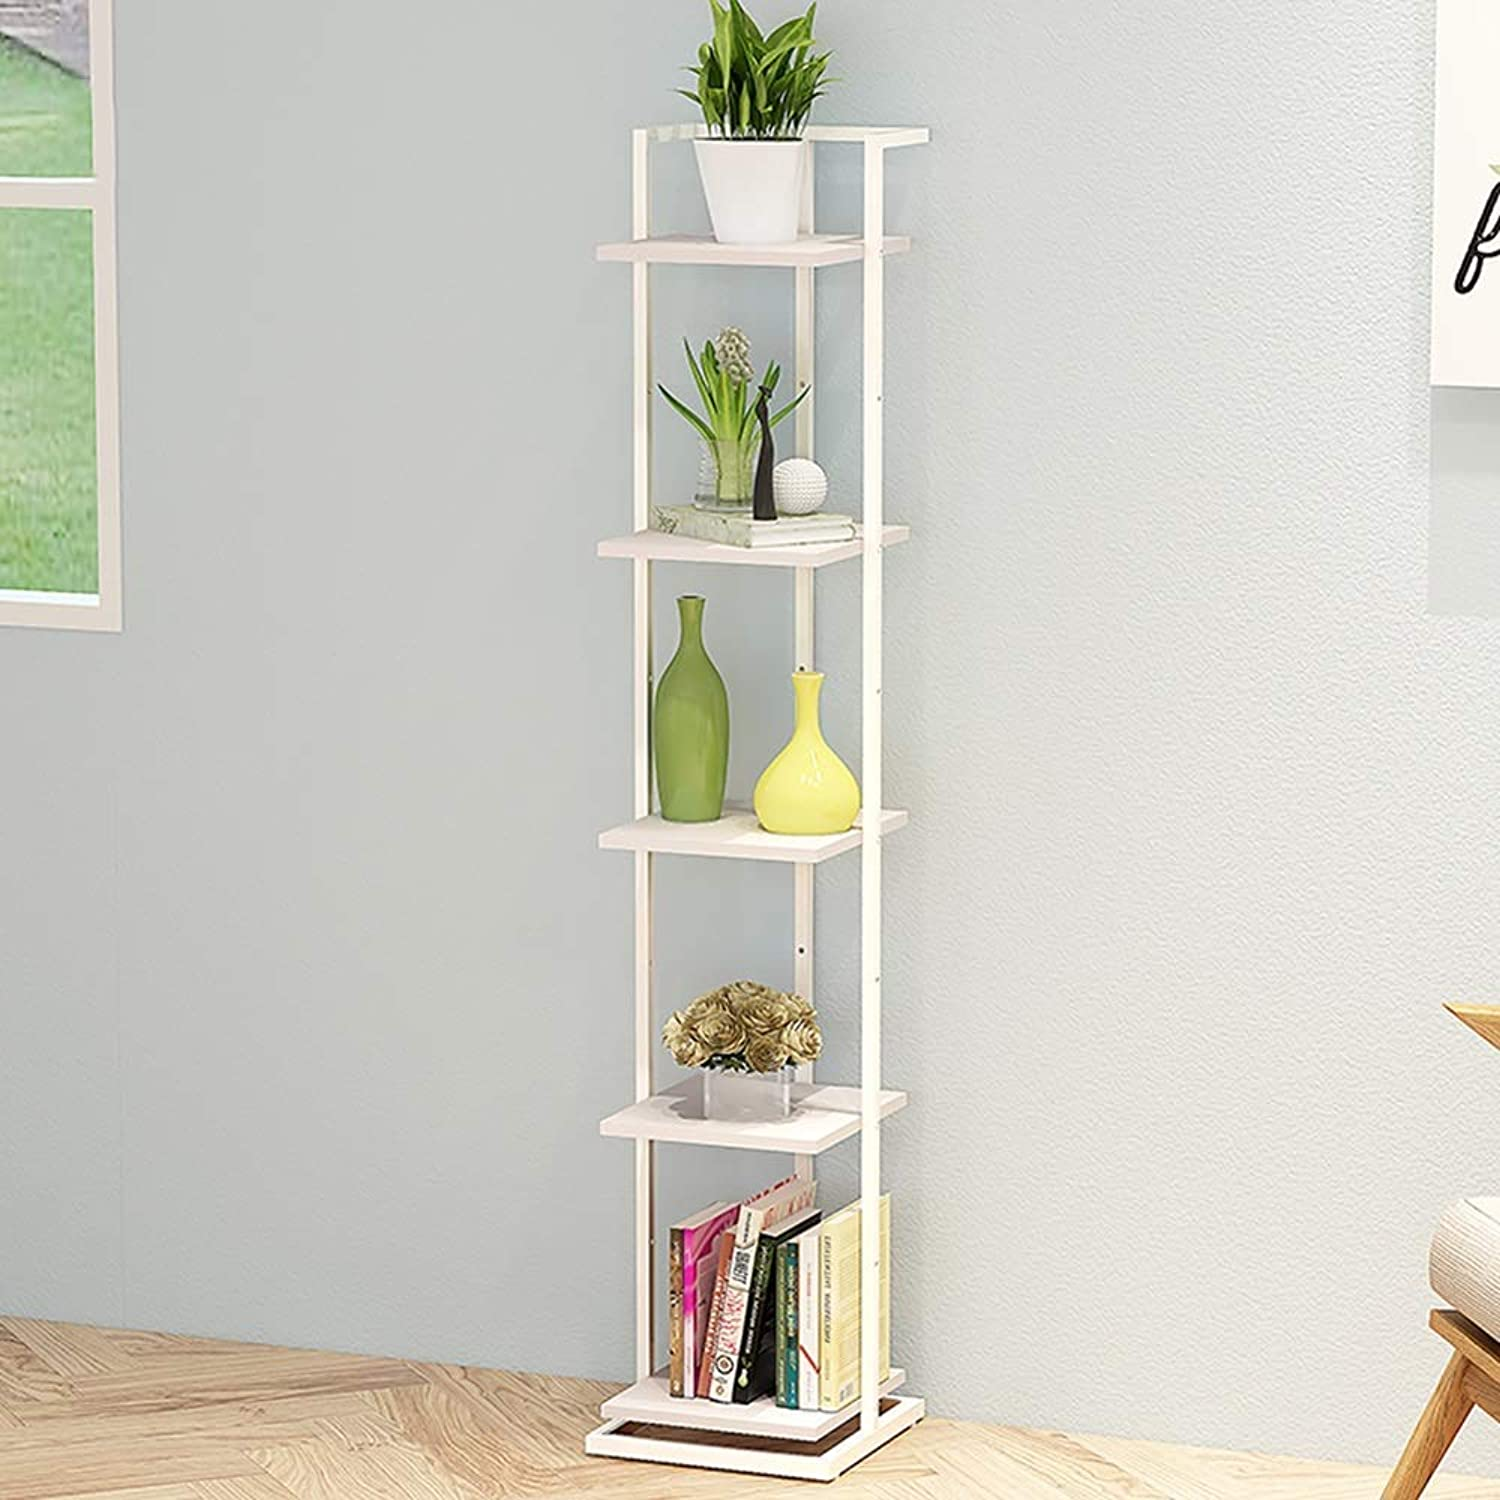 Bookcase Wrought Iron Bookshelf Storage Partition Racks Floor Bed Frame Bedroom Decorative Wood Shelf Iron Art,White,L